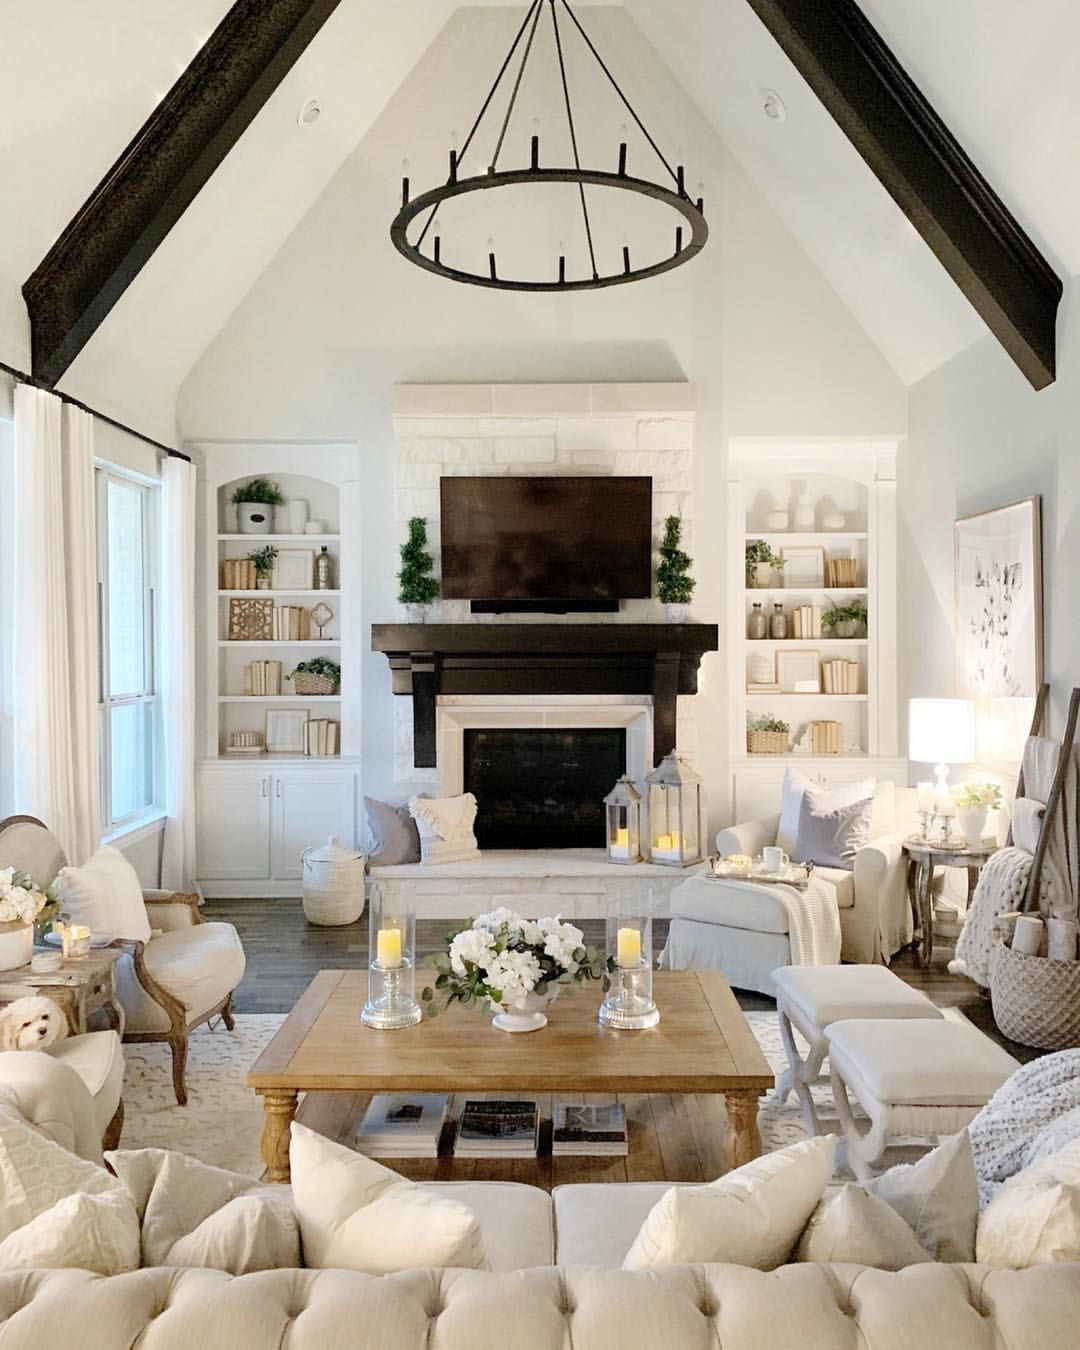 Hey Guys Pretty Excited That I Got My Family Room De Christmased The Rest Of The House Is A Hot Mess But Hey It S A S In 2020 Home Living Room Home